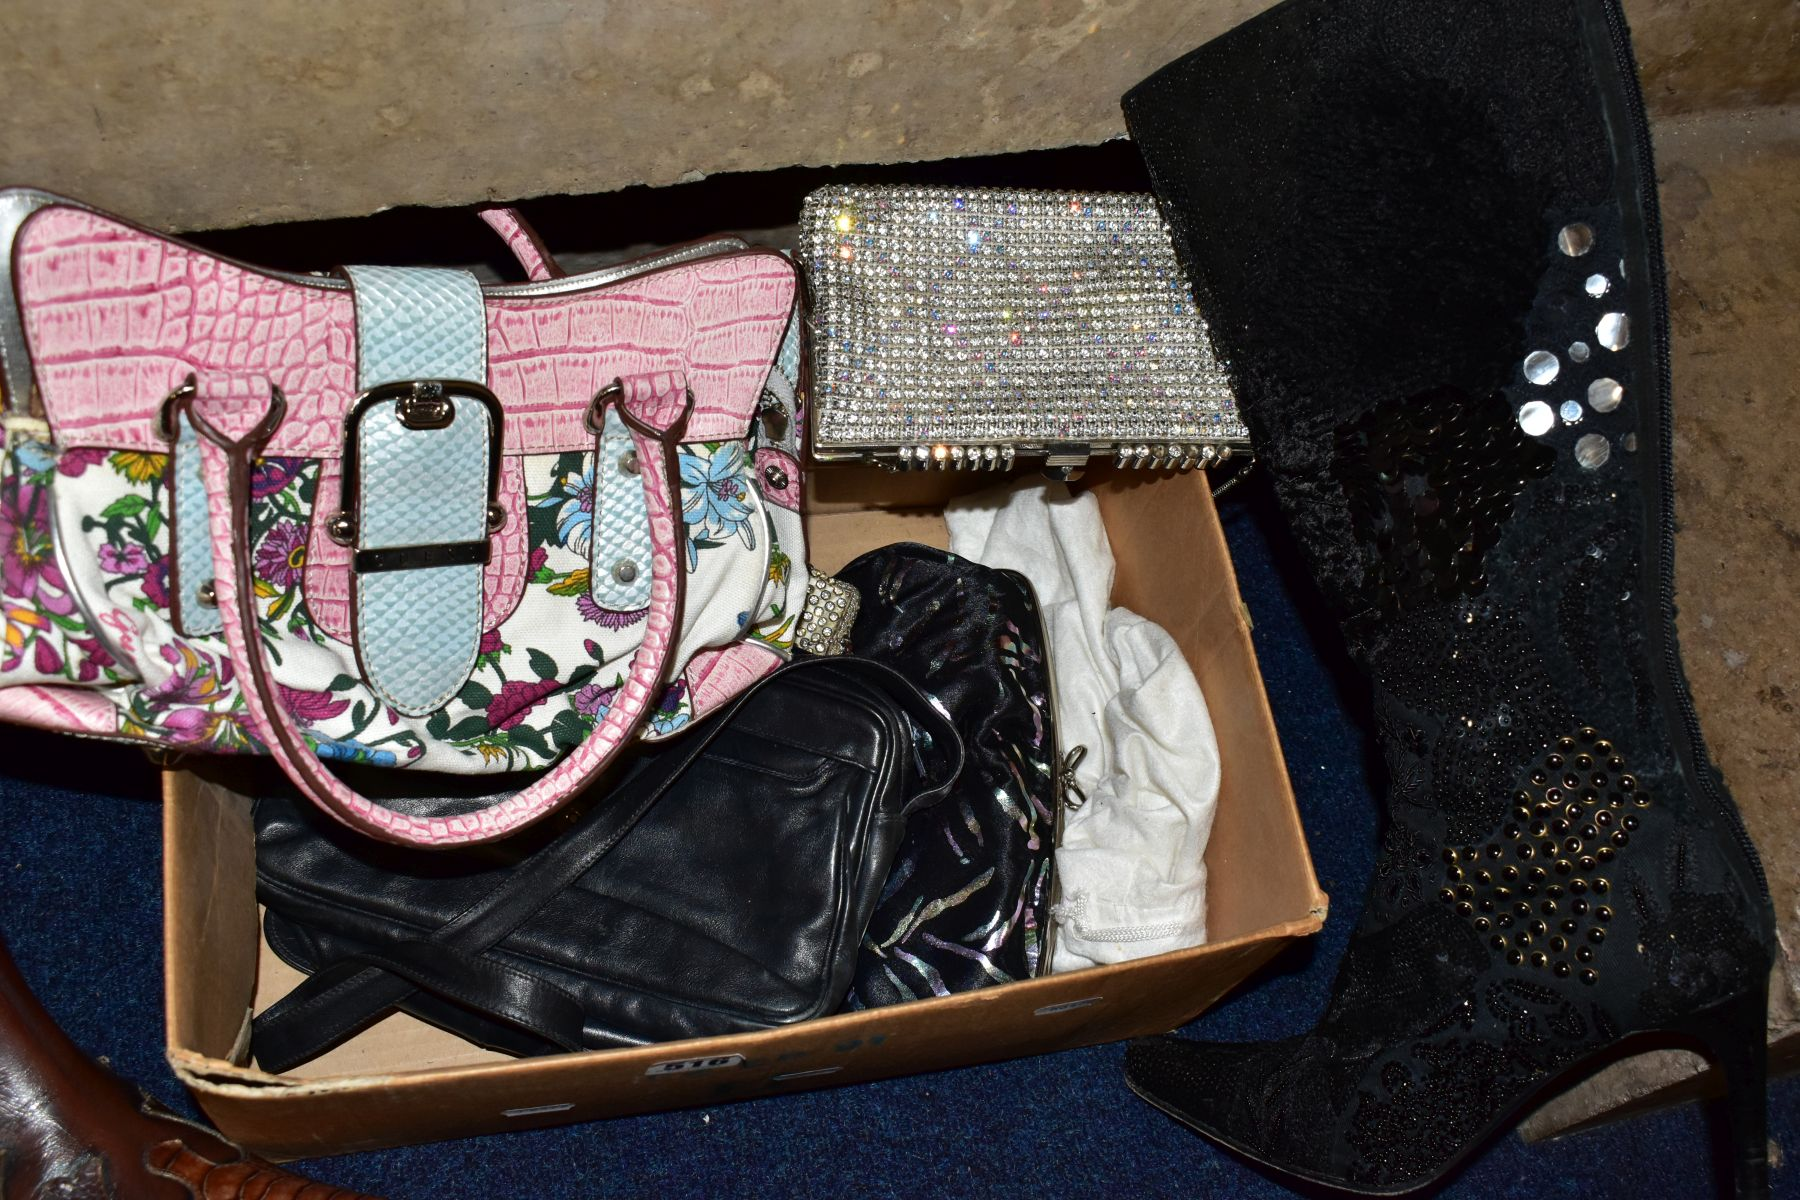 A QUANTITY OF LADIES SHOES AND HANDBAGS, EVENING BAGS, BOXED AND LOOSE, including a boxed pair of - Image 3 of 7